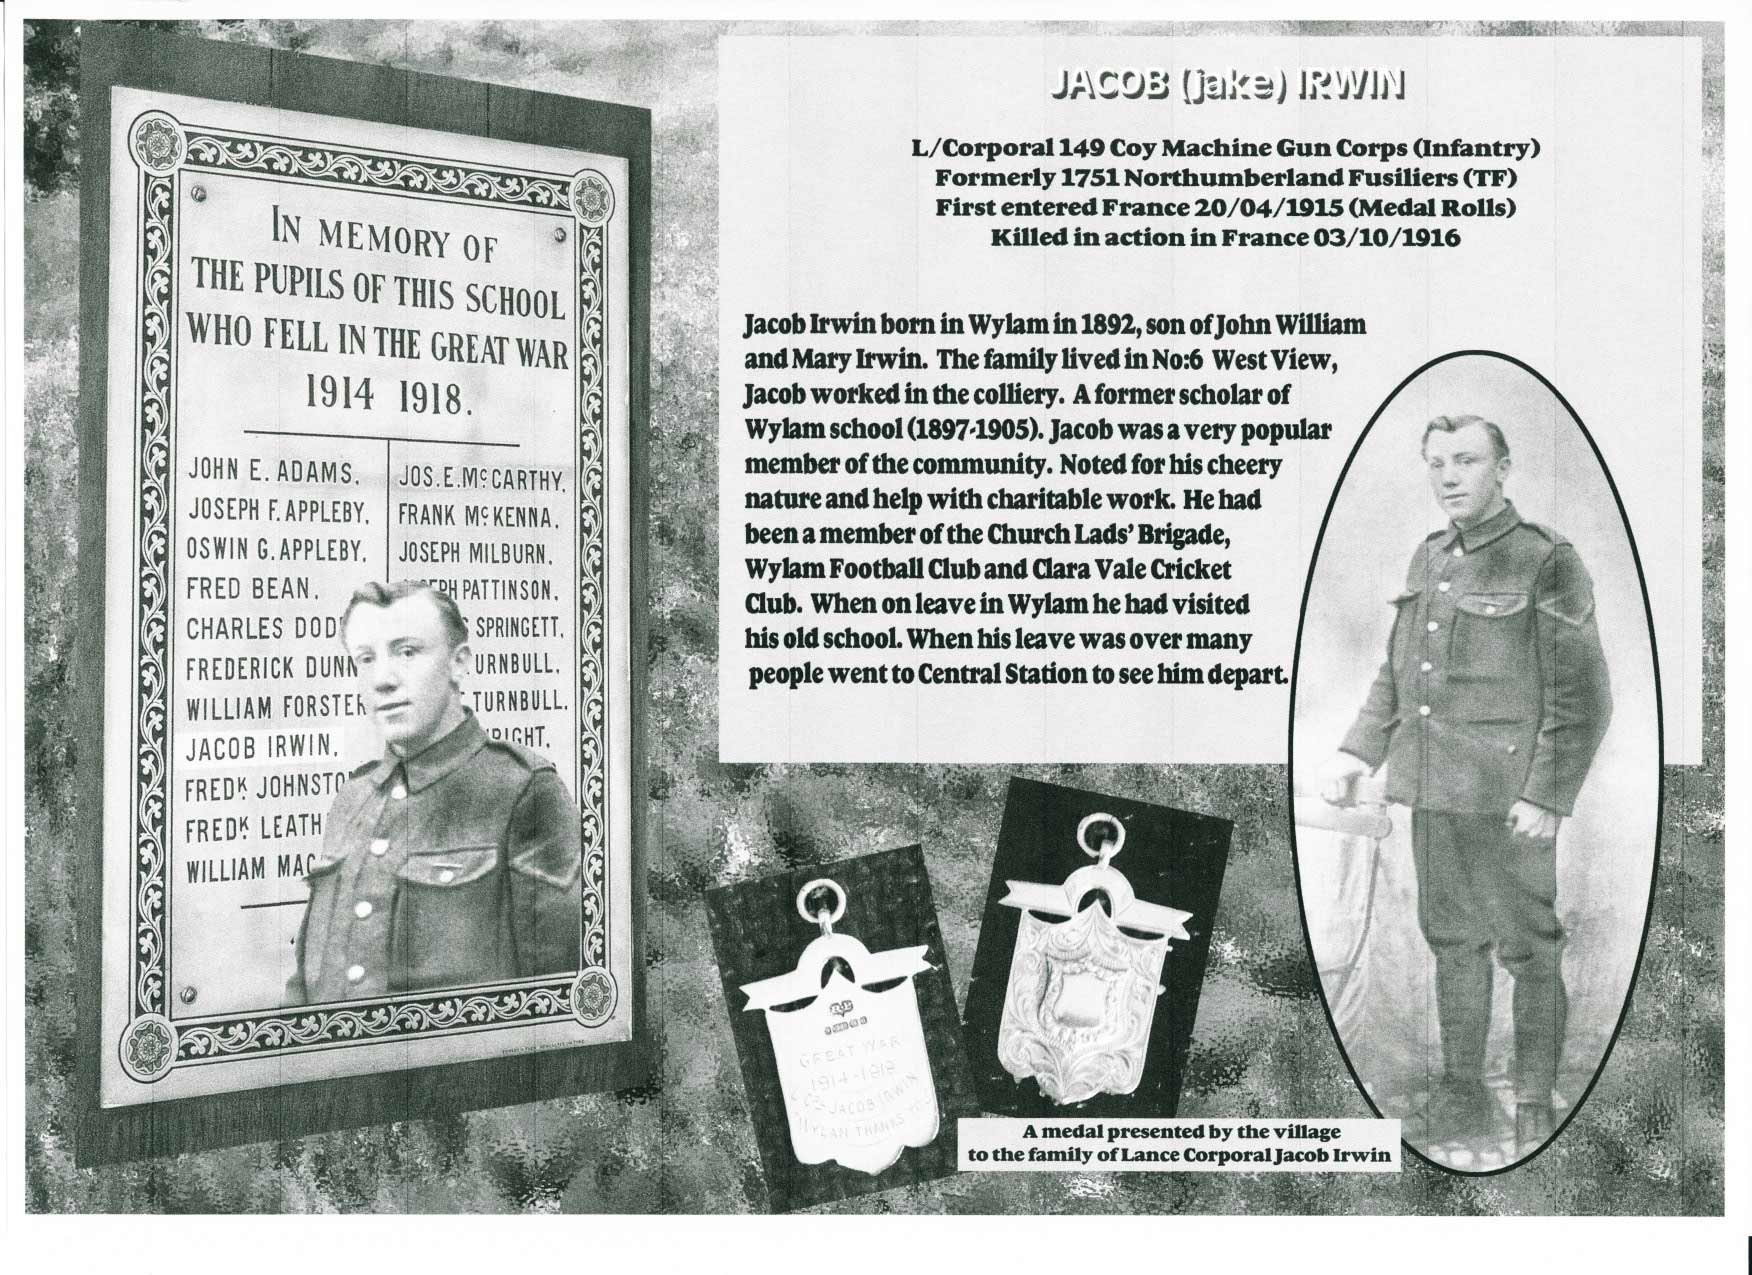 Information about Jacob Irwin who lived in Wylam and was killed in the First World War